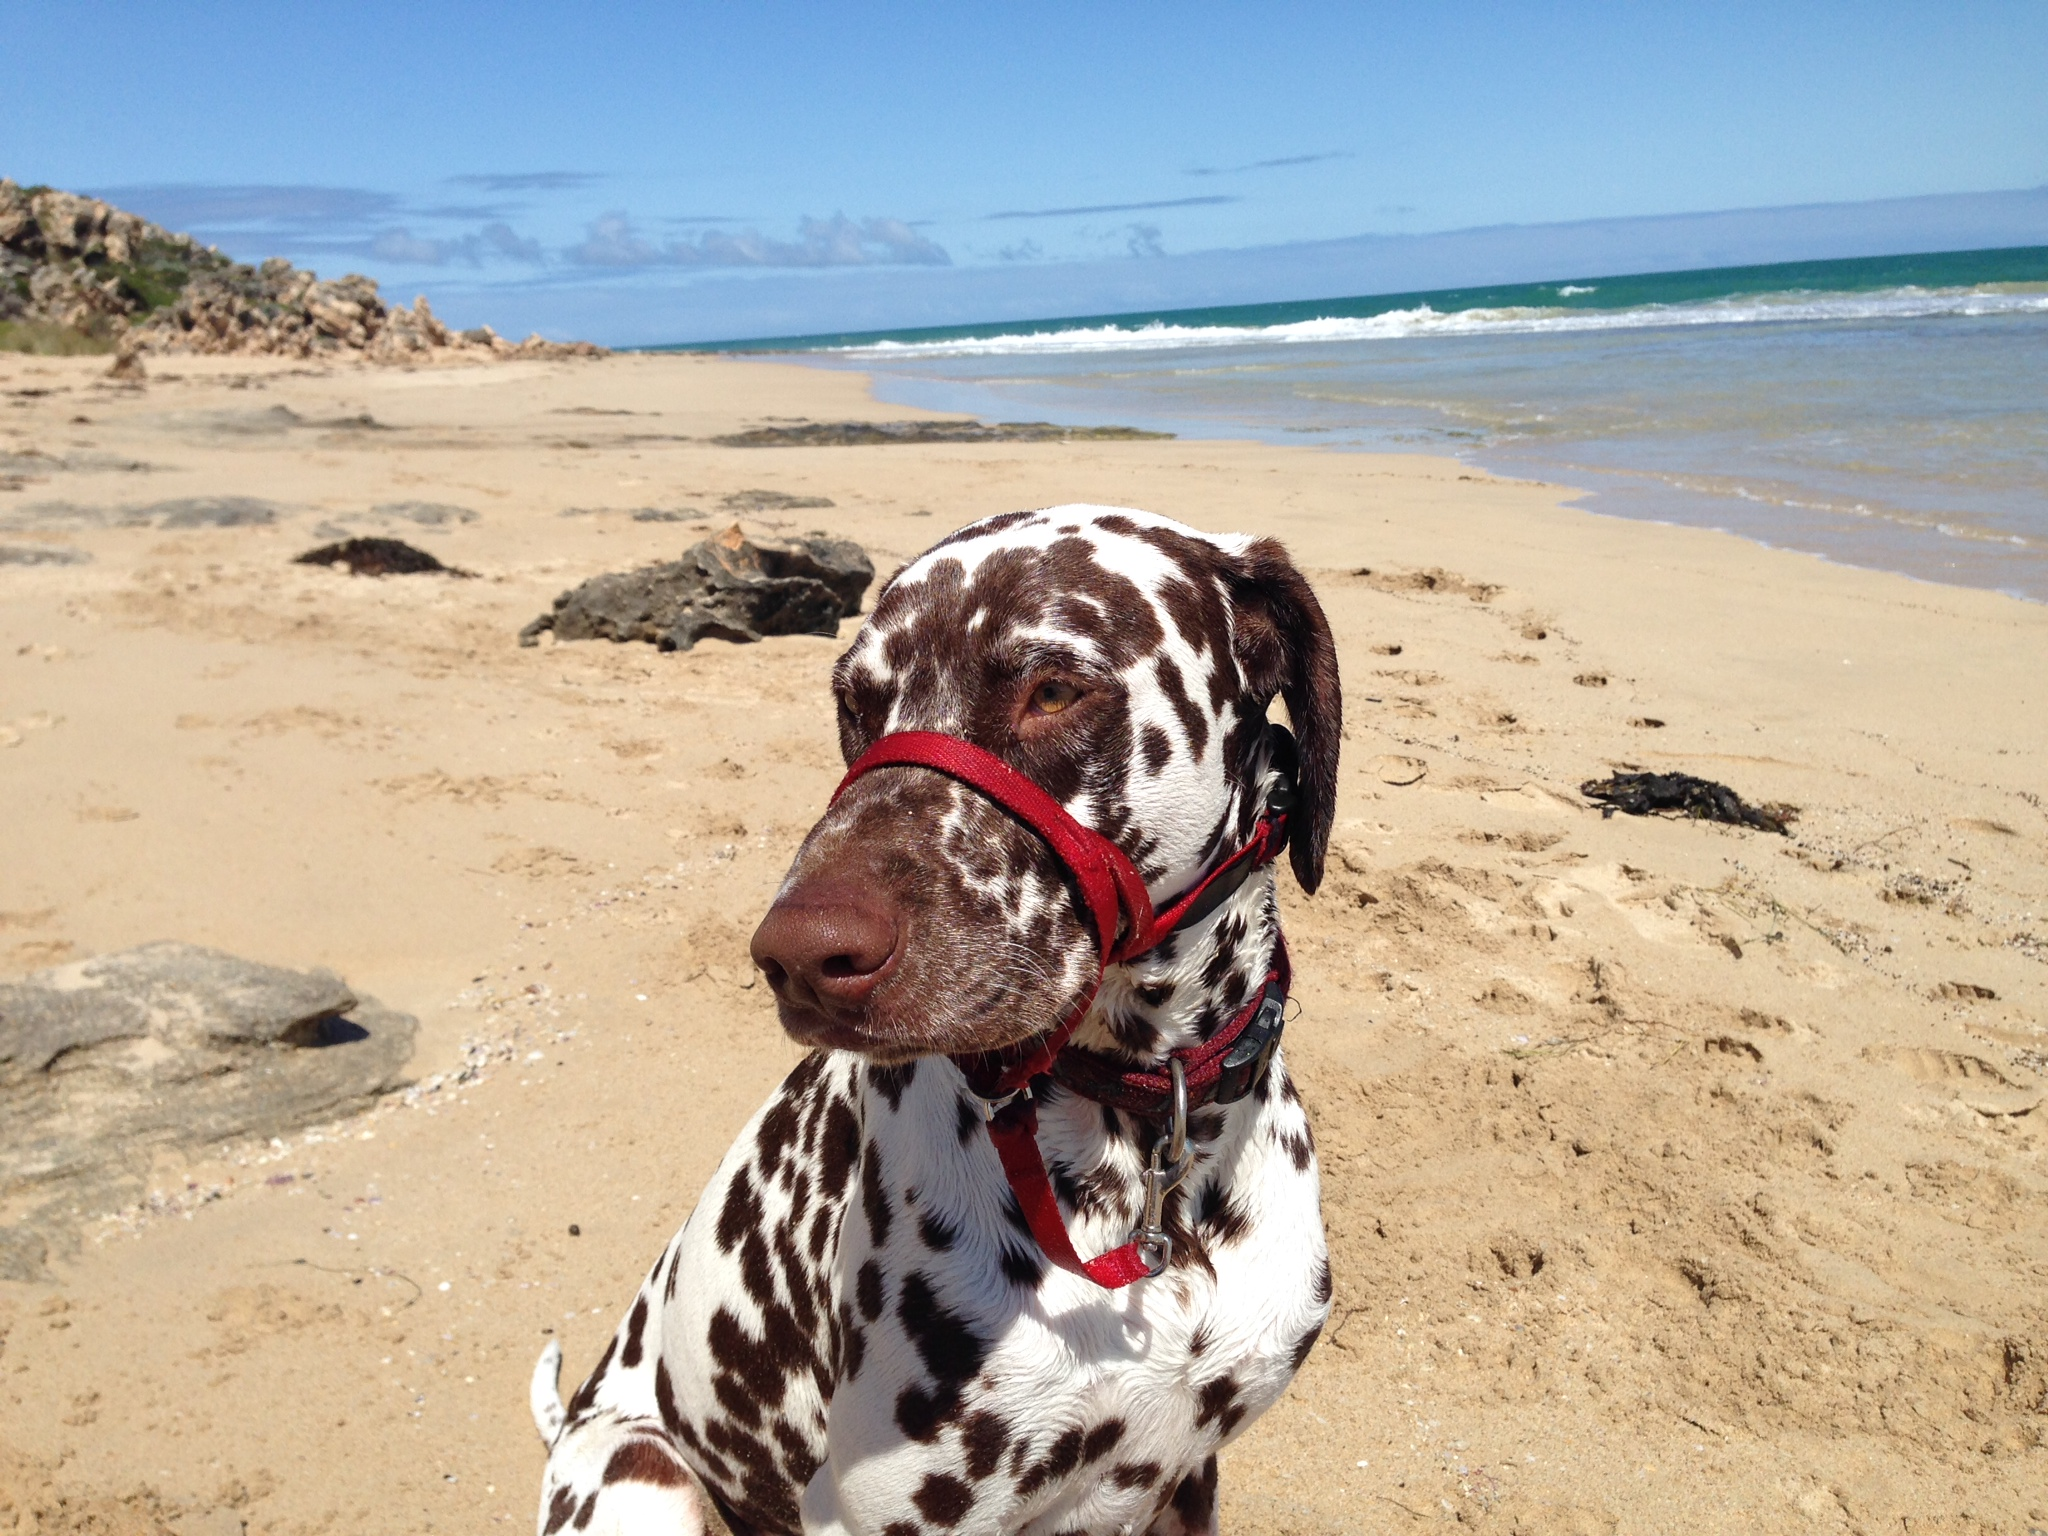 Charlie at the beach